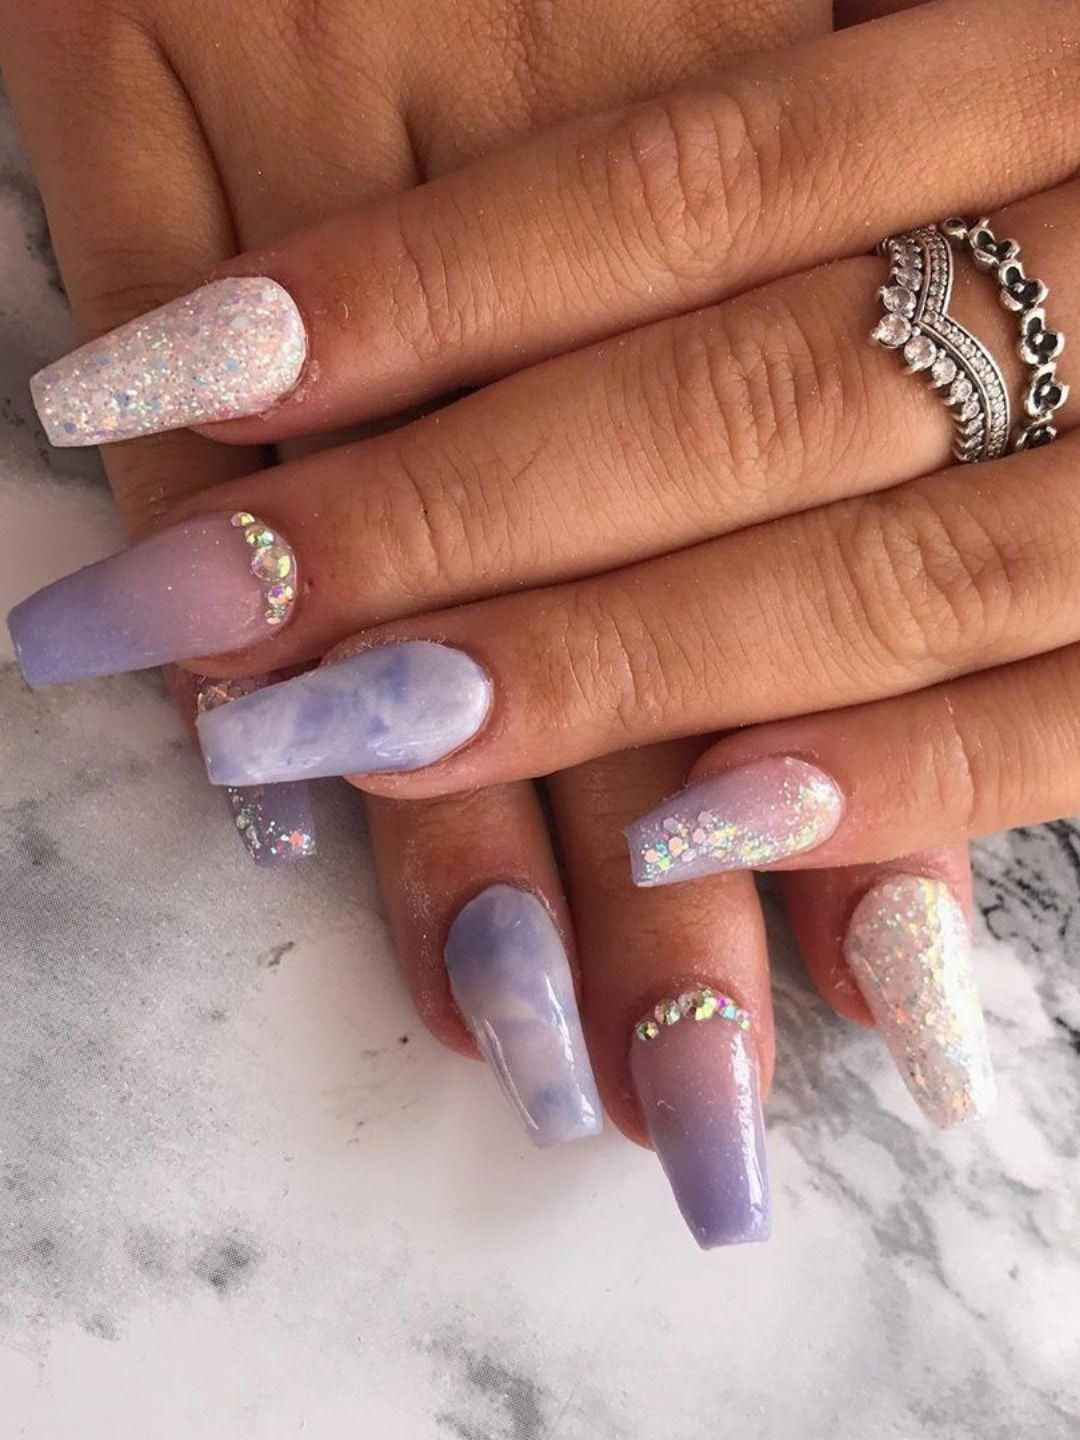 Beautiful Purple Ombre Coffin Nails With Glitter Purple Marble Coffin Nails And Glitter Coffin Nails Design In 2020 Ombre Nails Pink Ombre Nails Purple Ombre Nails